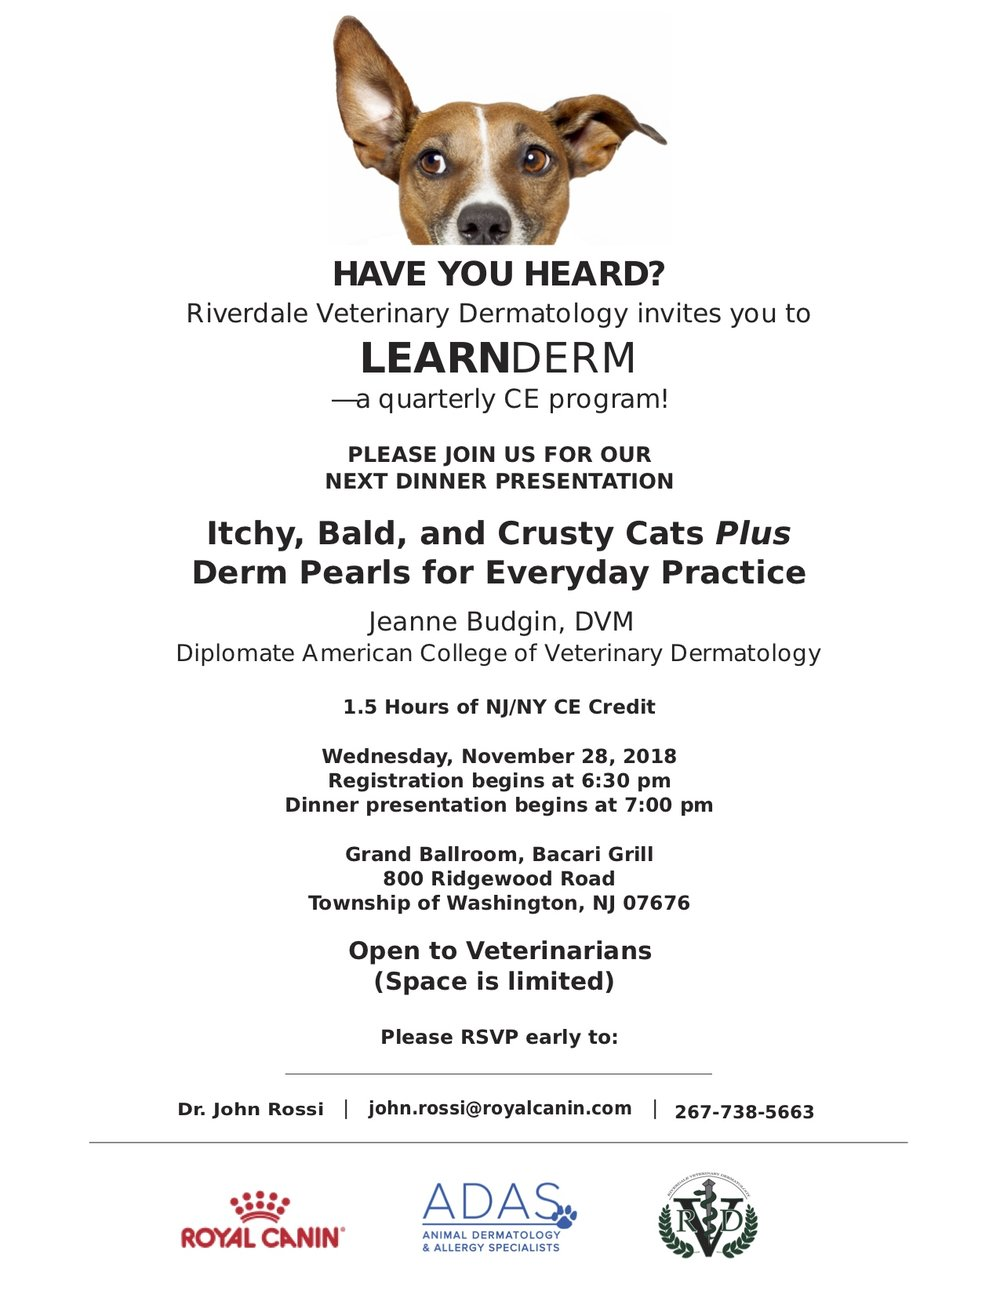 LearnDerm 11.28.18 invite.jpg